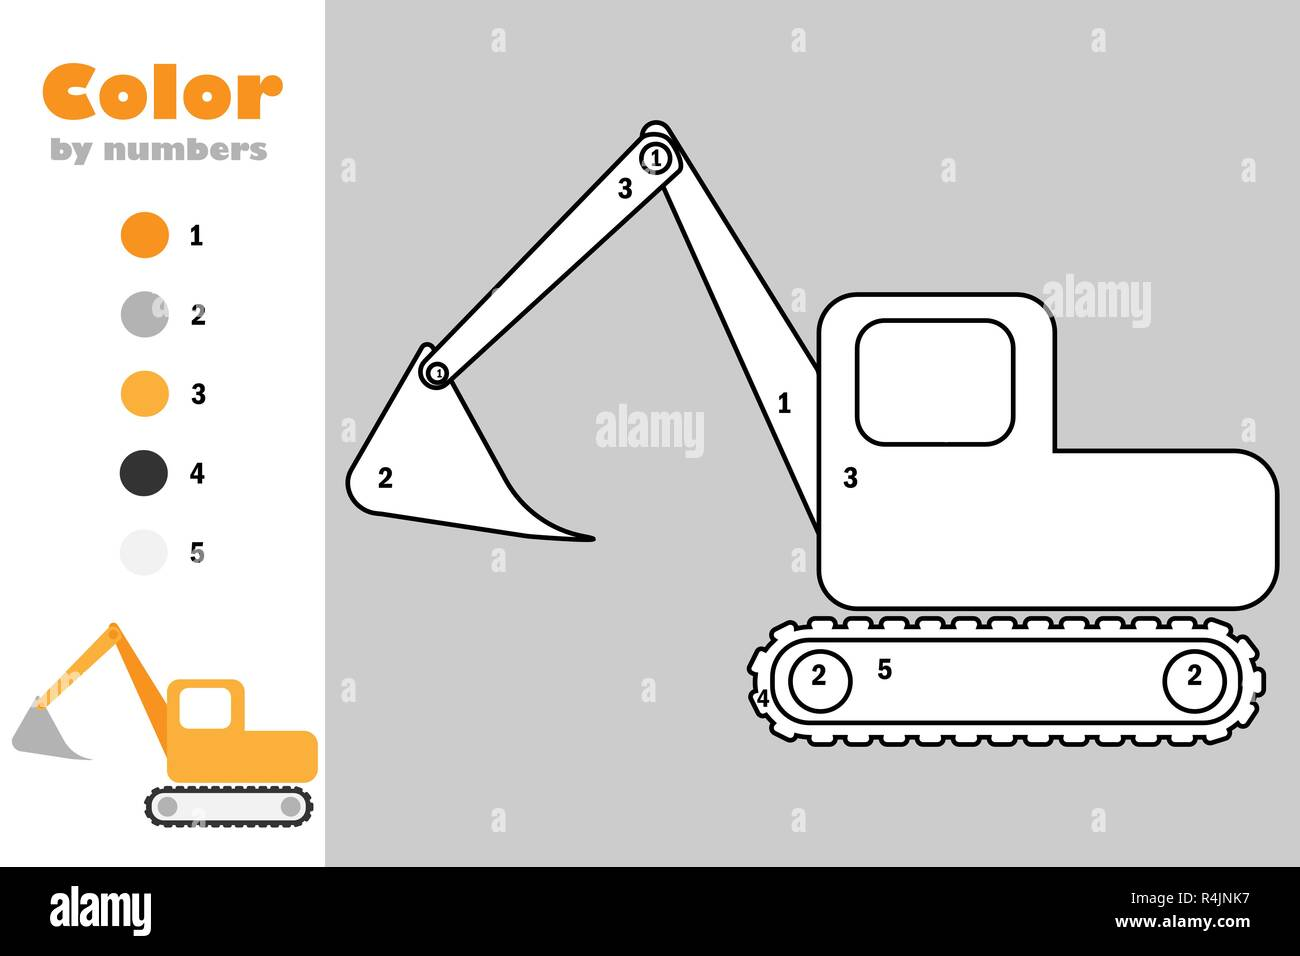 Excavator In Cartoon Style Color By Number Education Paper Game For The Development Of Children Coloring Page Kids Preschool Activity Printable W Stock Vector Image Art Alamy